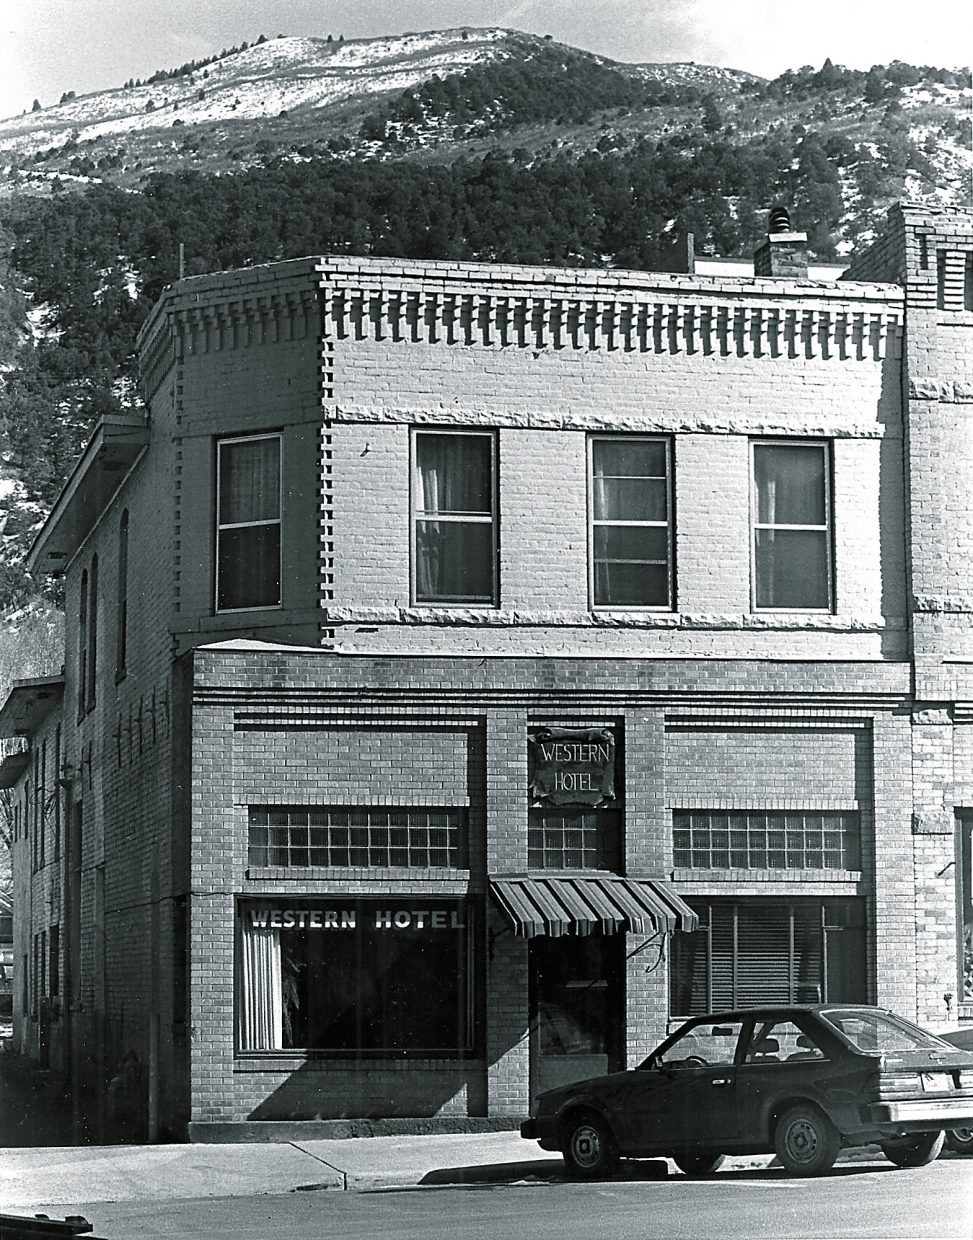 The Western Hotel, circa 1980s when it was still served as an active boarding house and overnight accommodations for working-class visitors to Glenwood Springs.